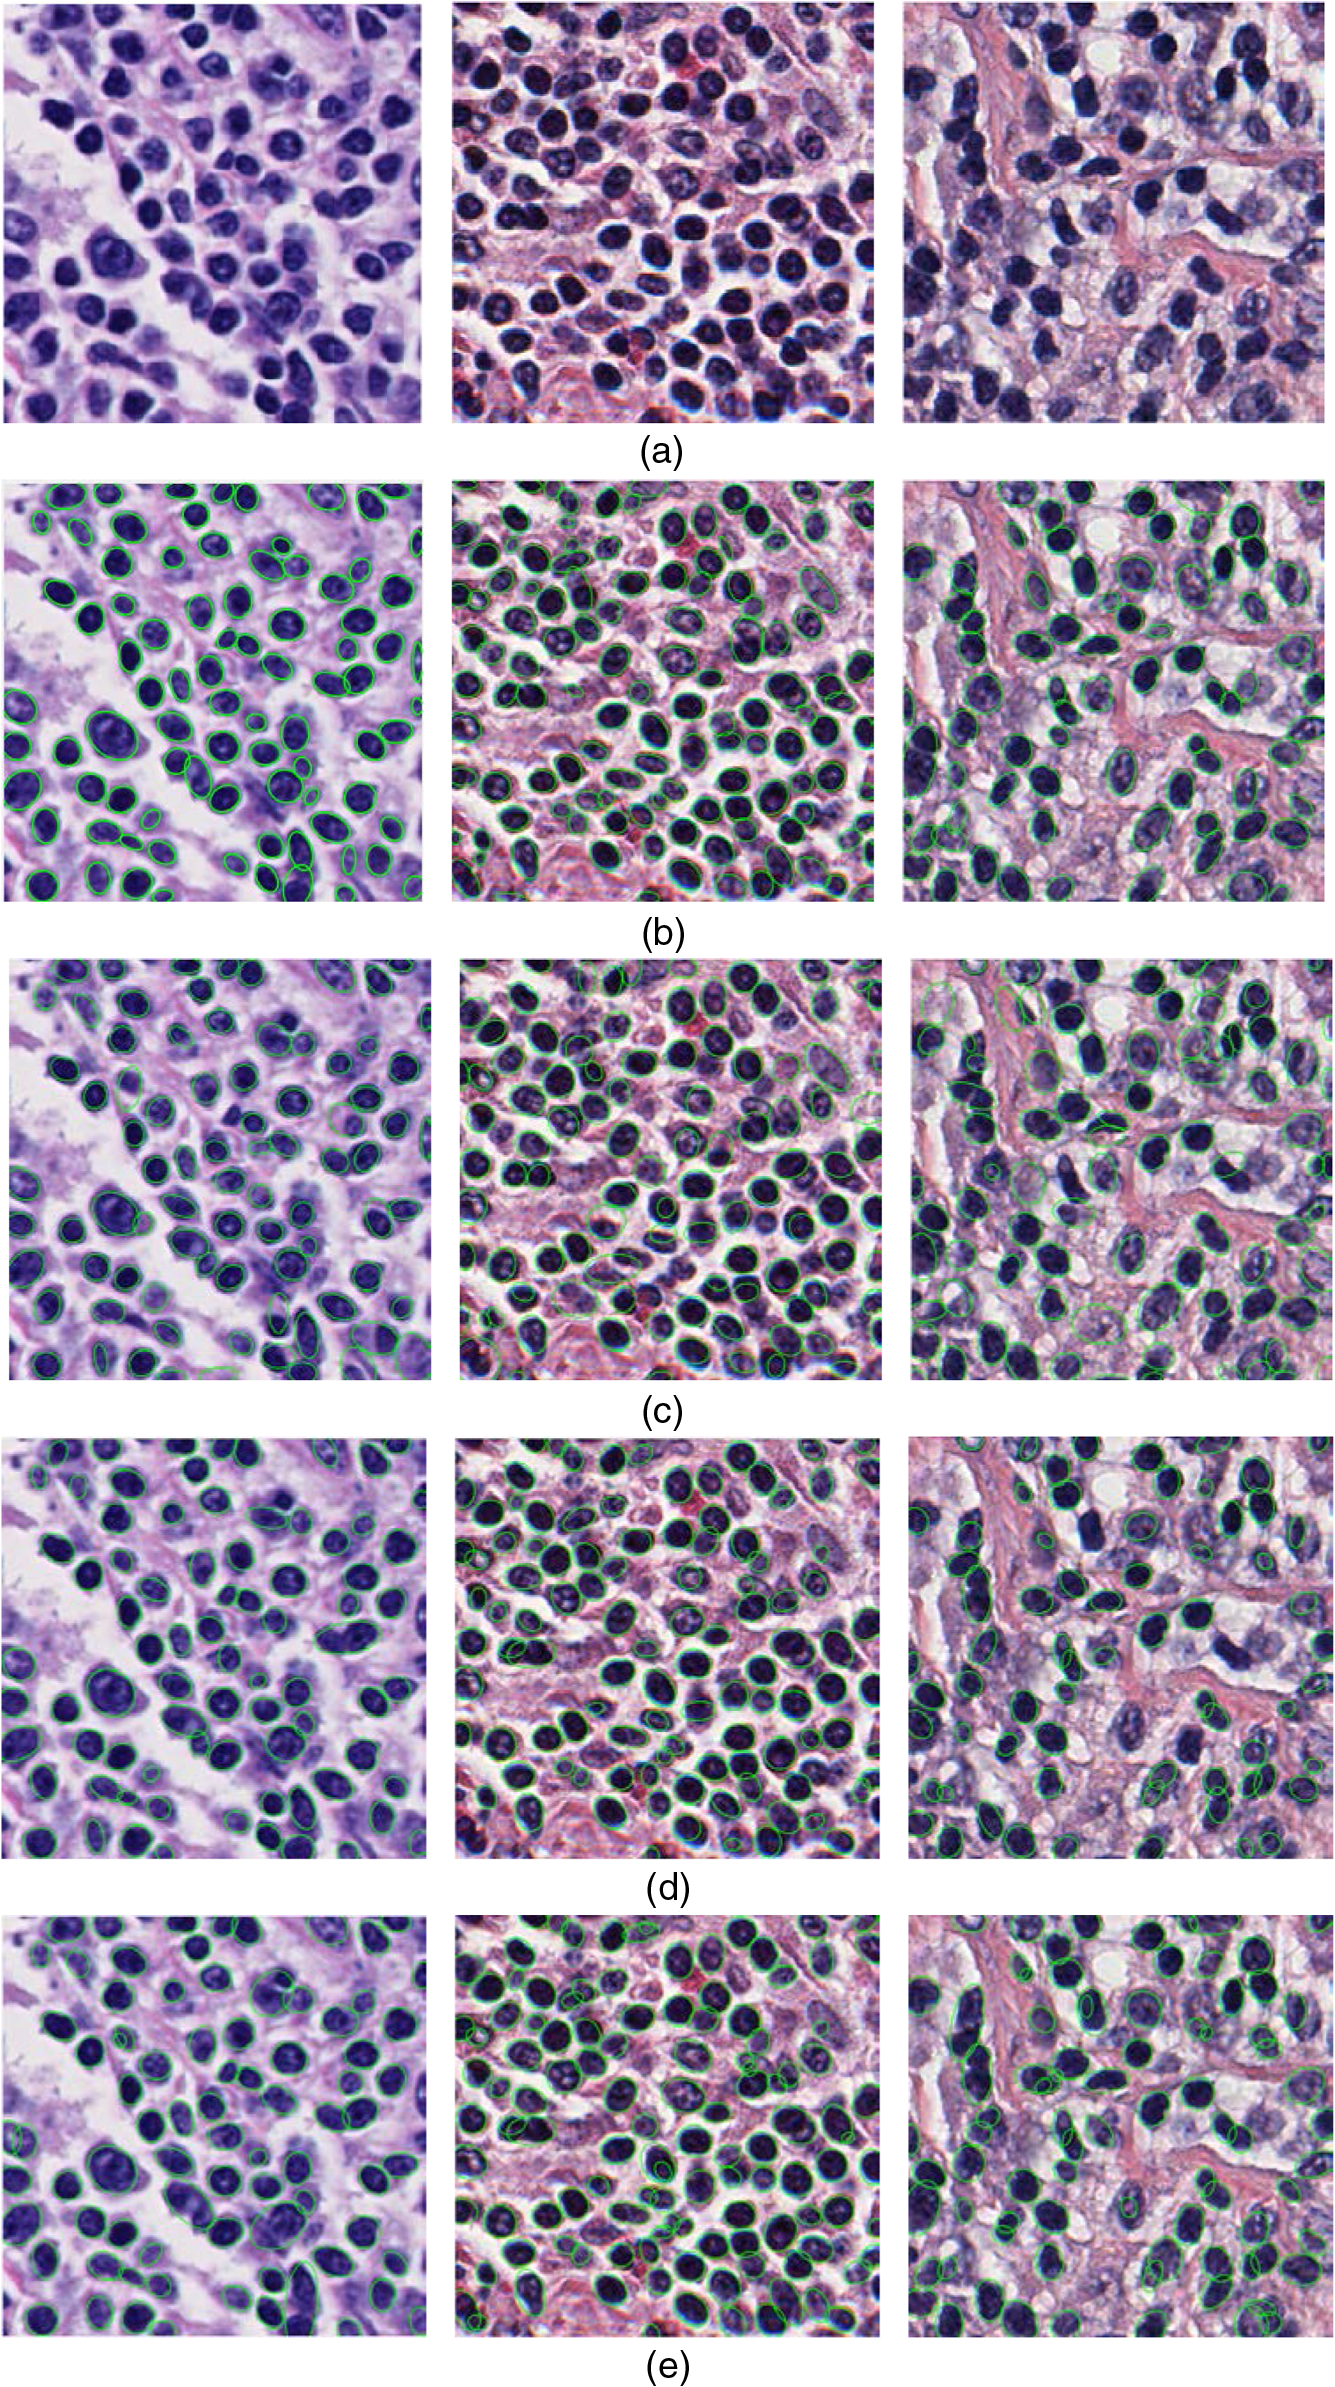 Automatic extraction of cell nuclei from H&E-stained